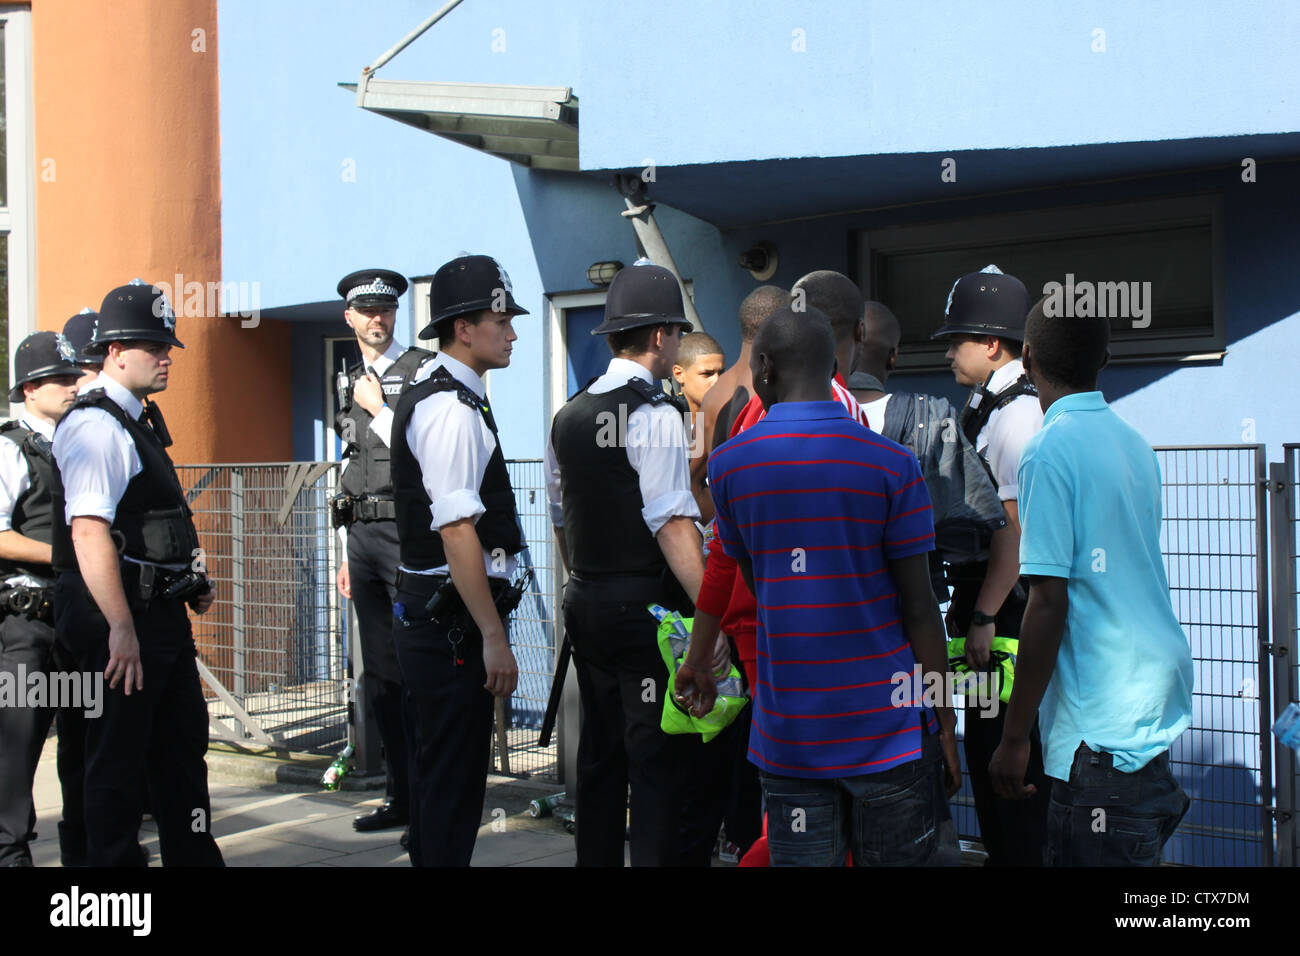 Police stopping youths for questioning during Notting Hill Carnival - Stock Image